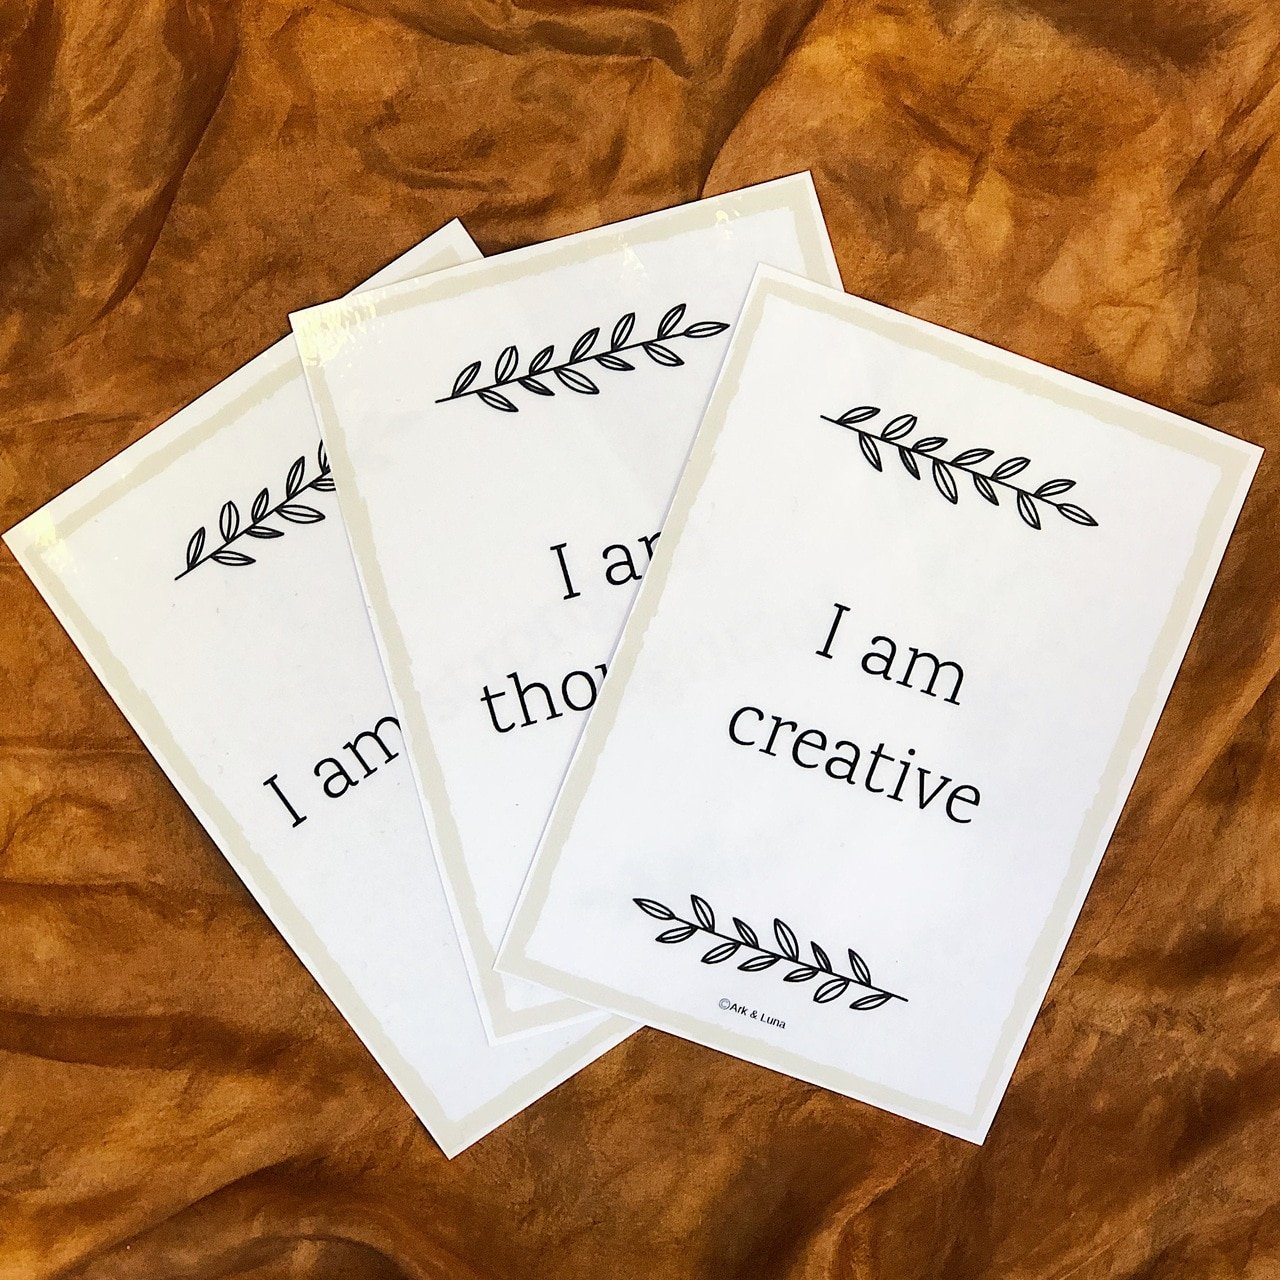 Strengths Cards for Kids - Digital Download